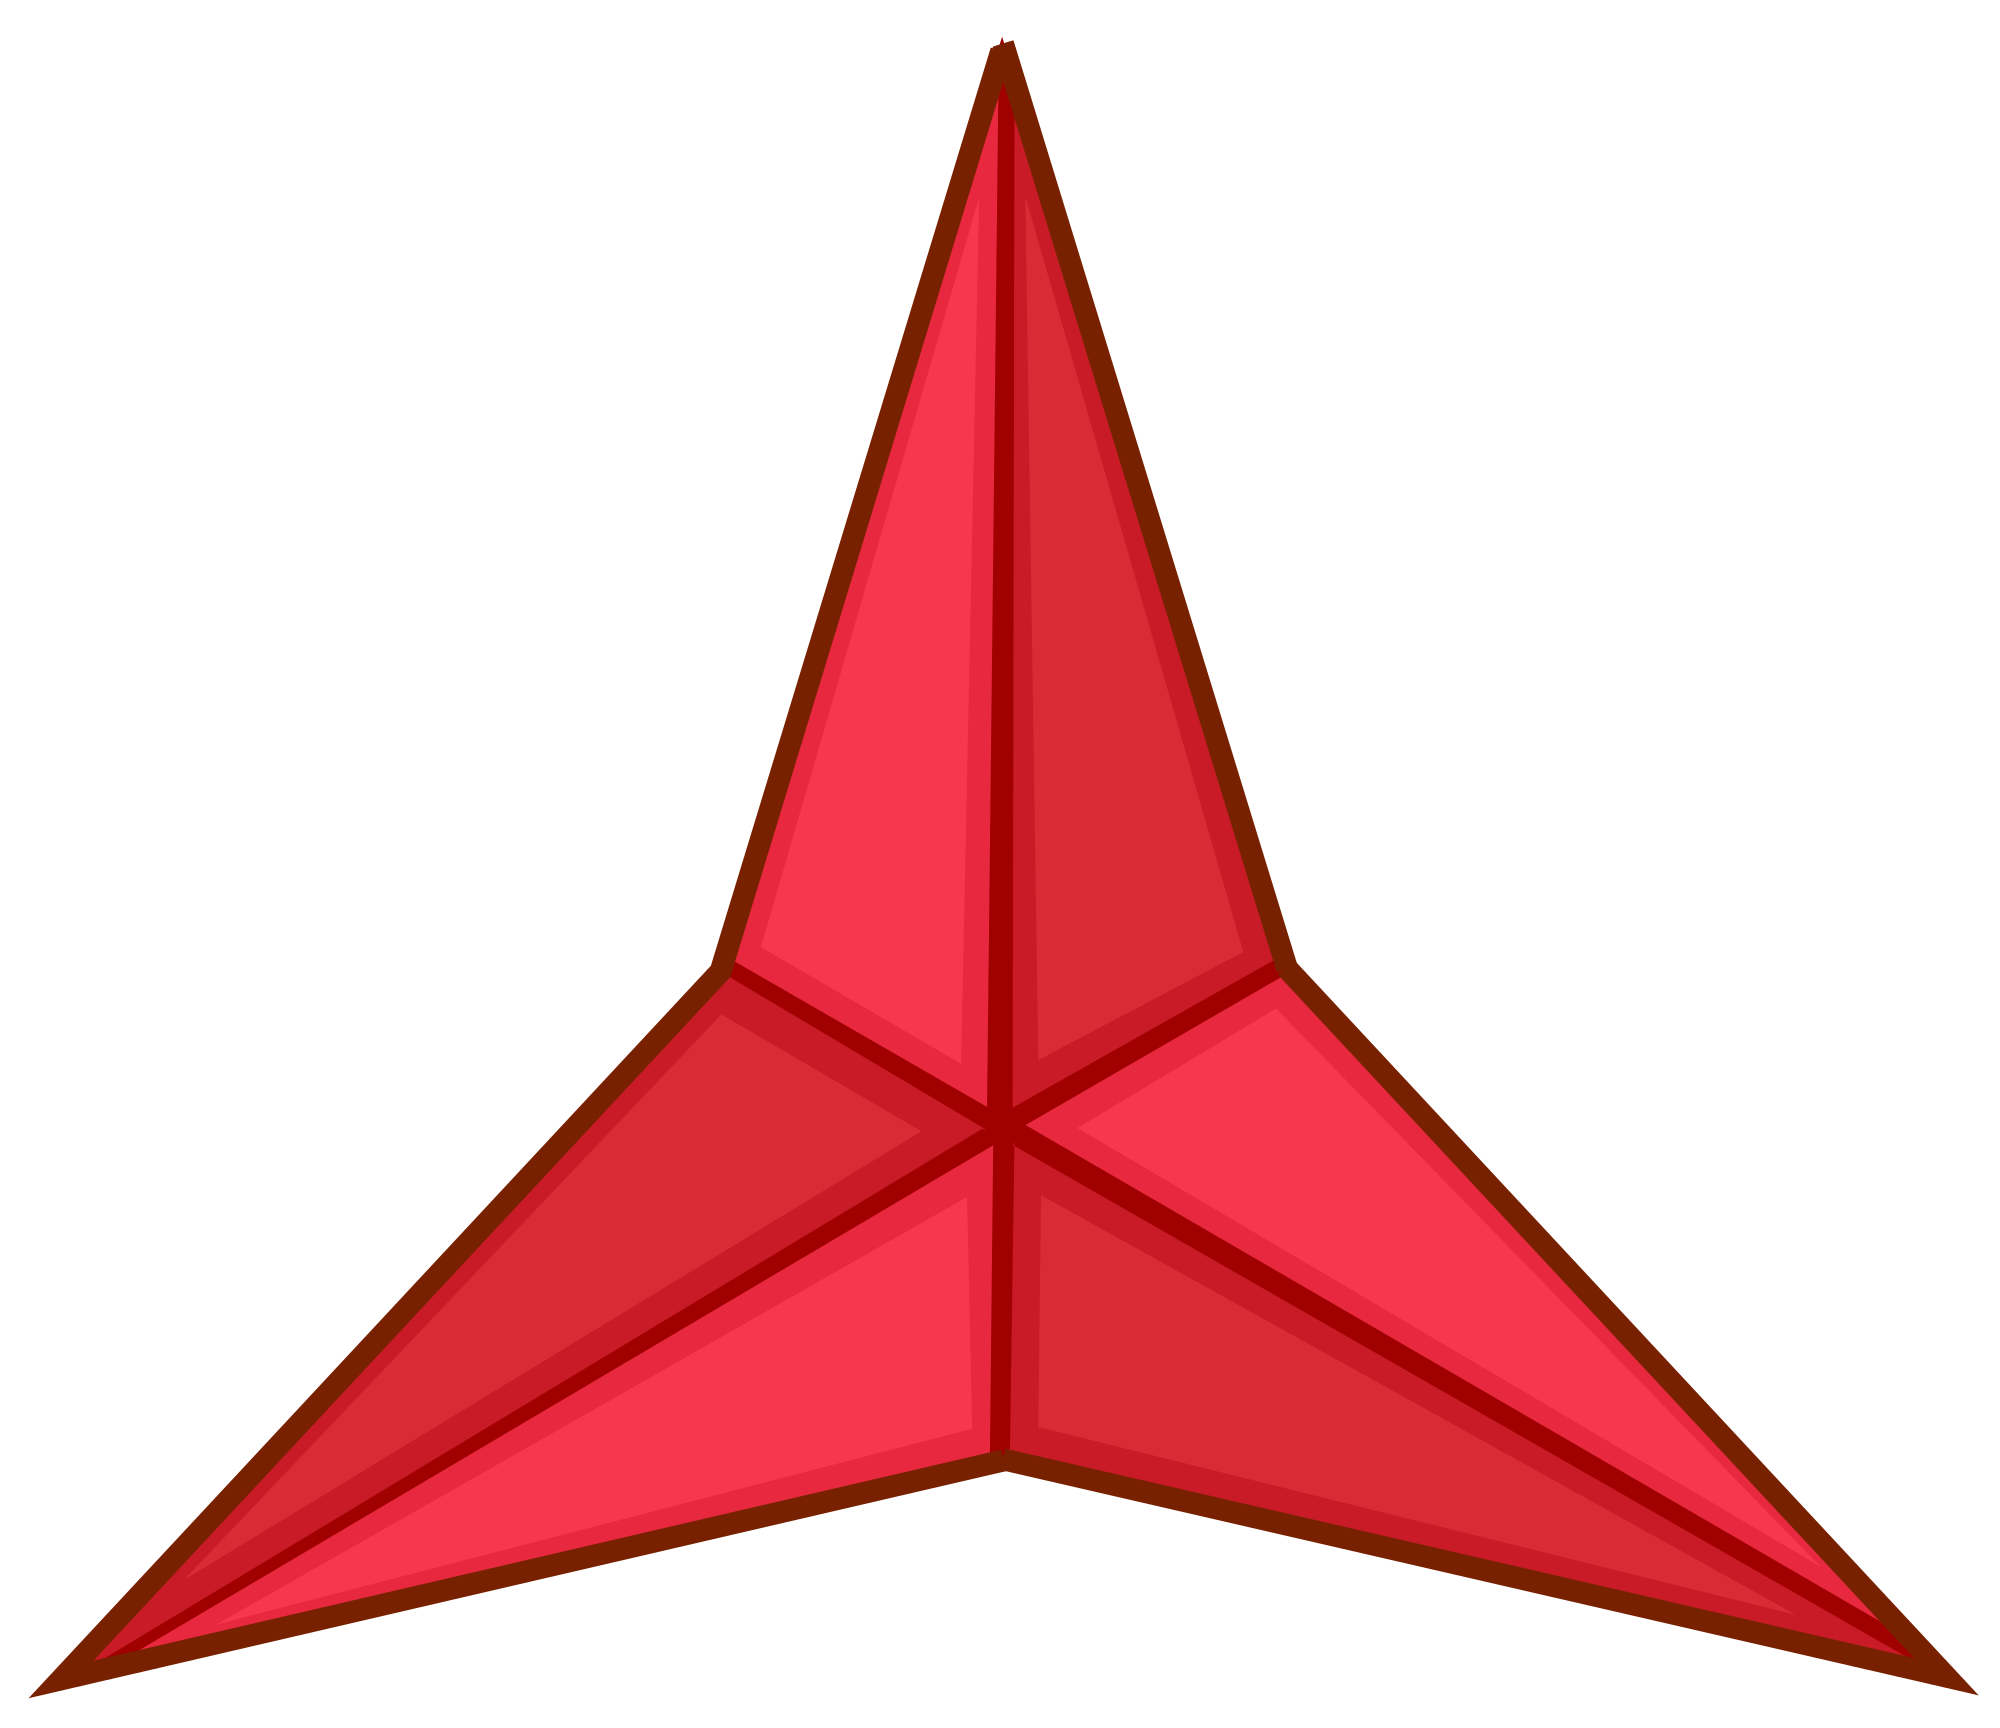 Clipart mod red star clip freeuse download File:Internationalist Star.svg - Wikimedia Commons clip freeuse download